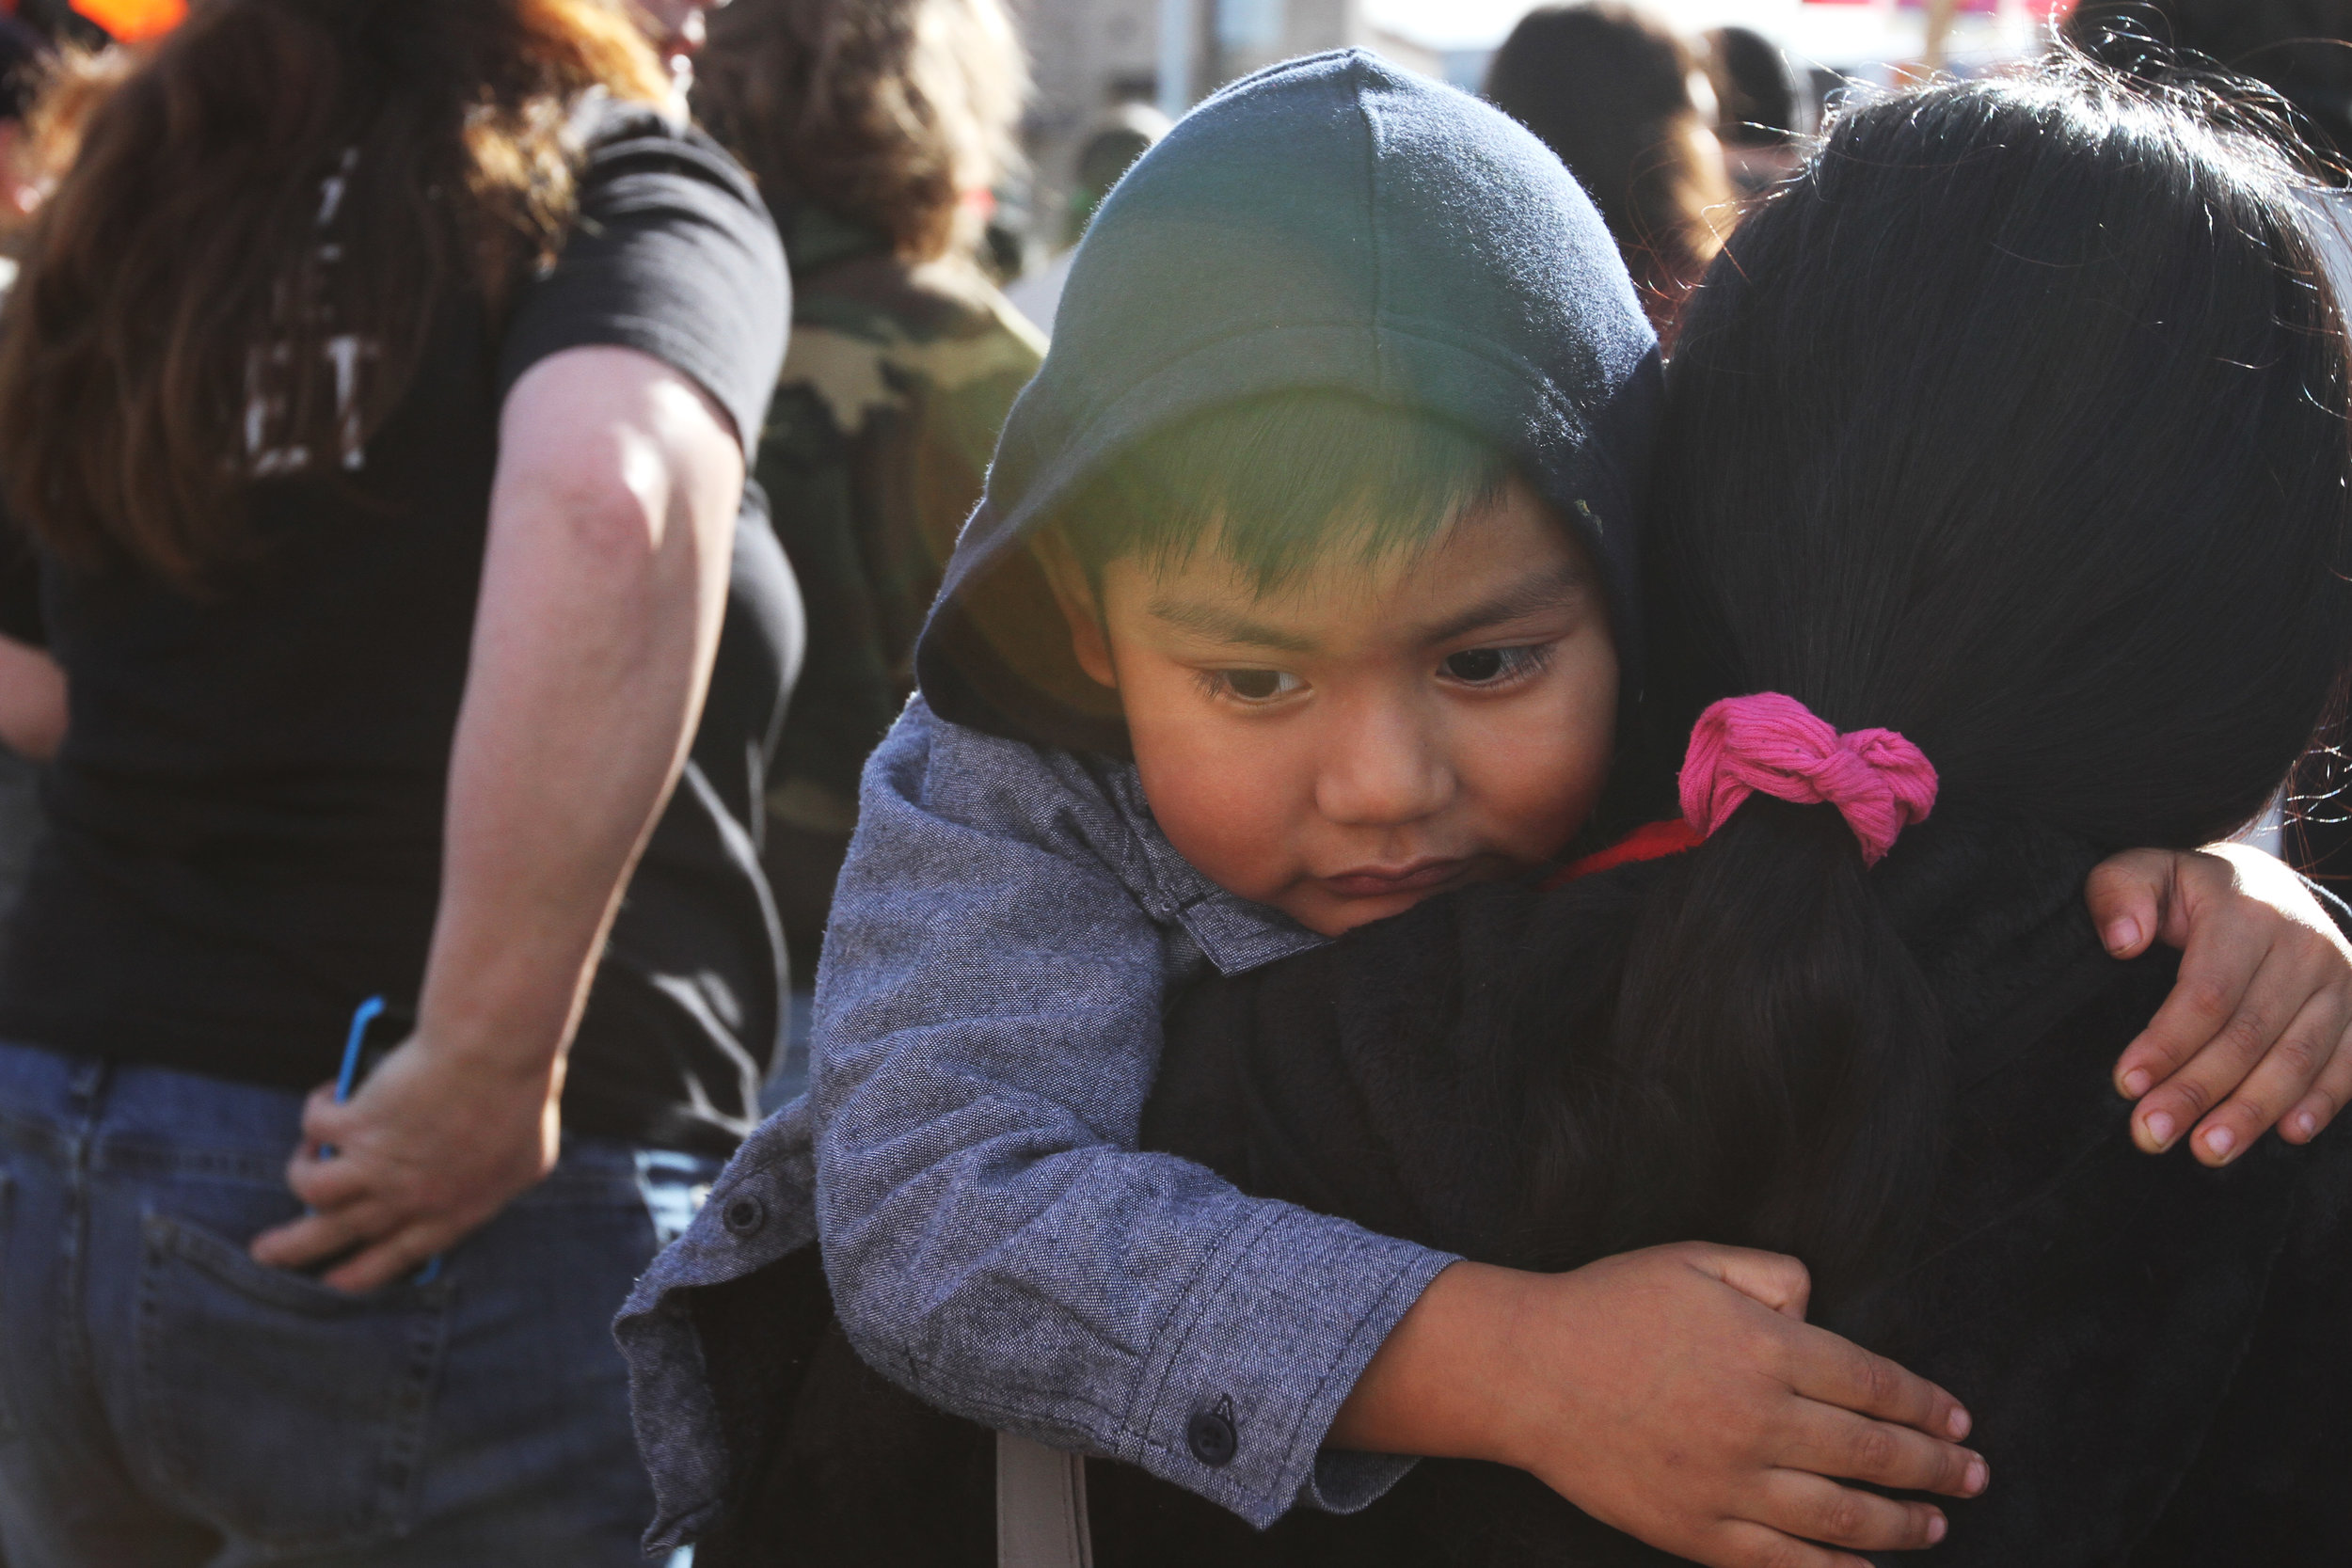 A child gets carried during a seven mile long march advocating for migrant workers.